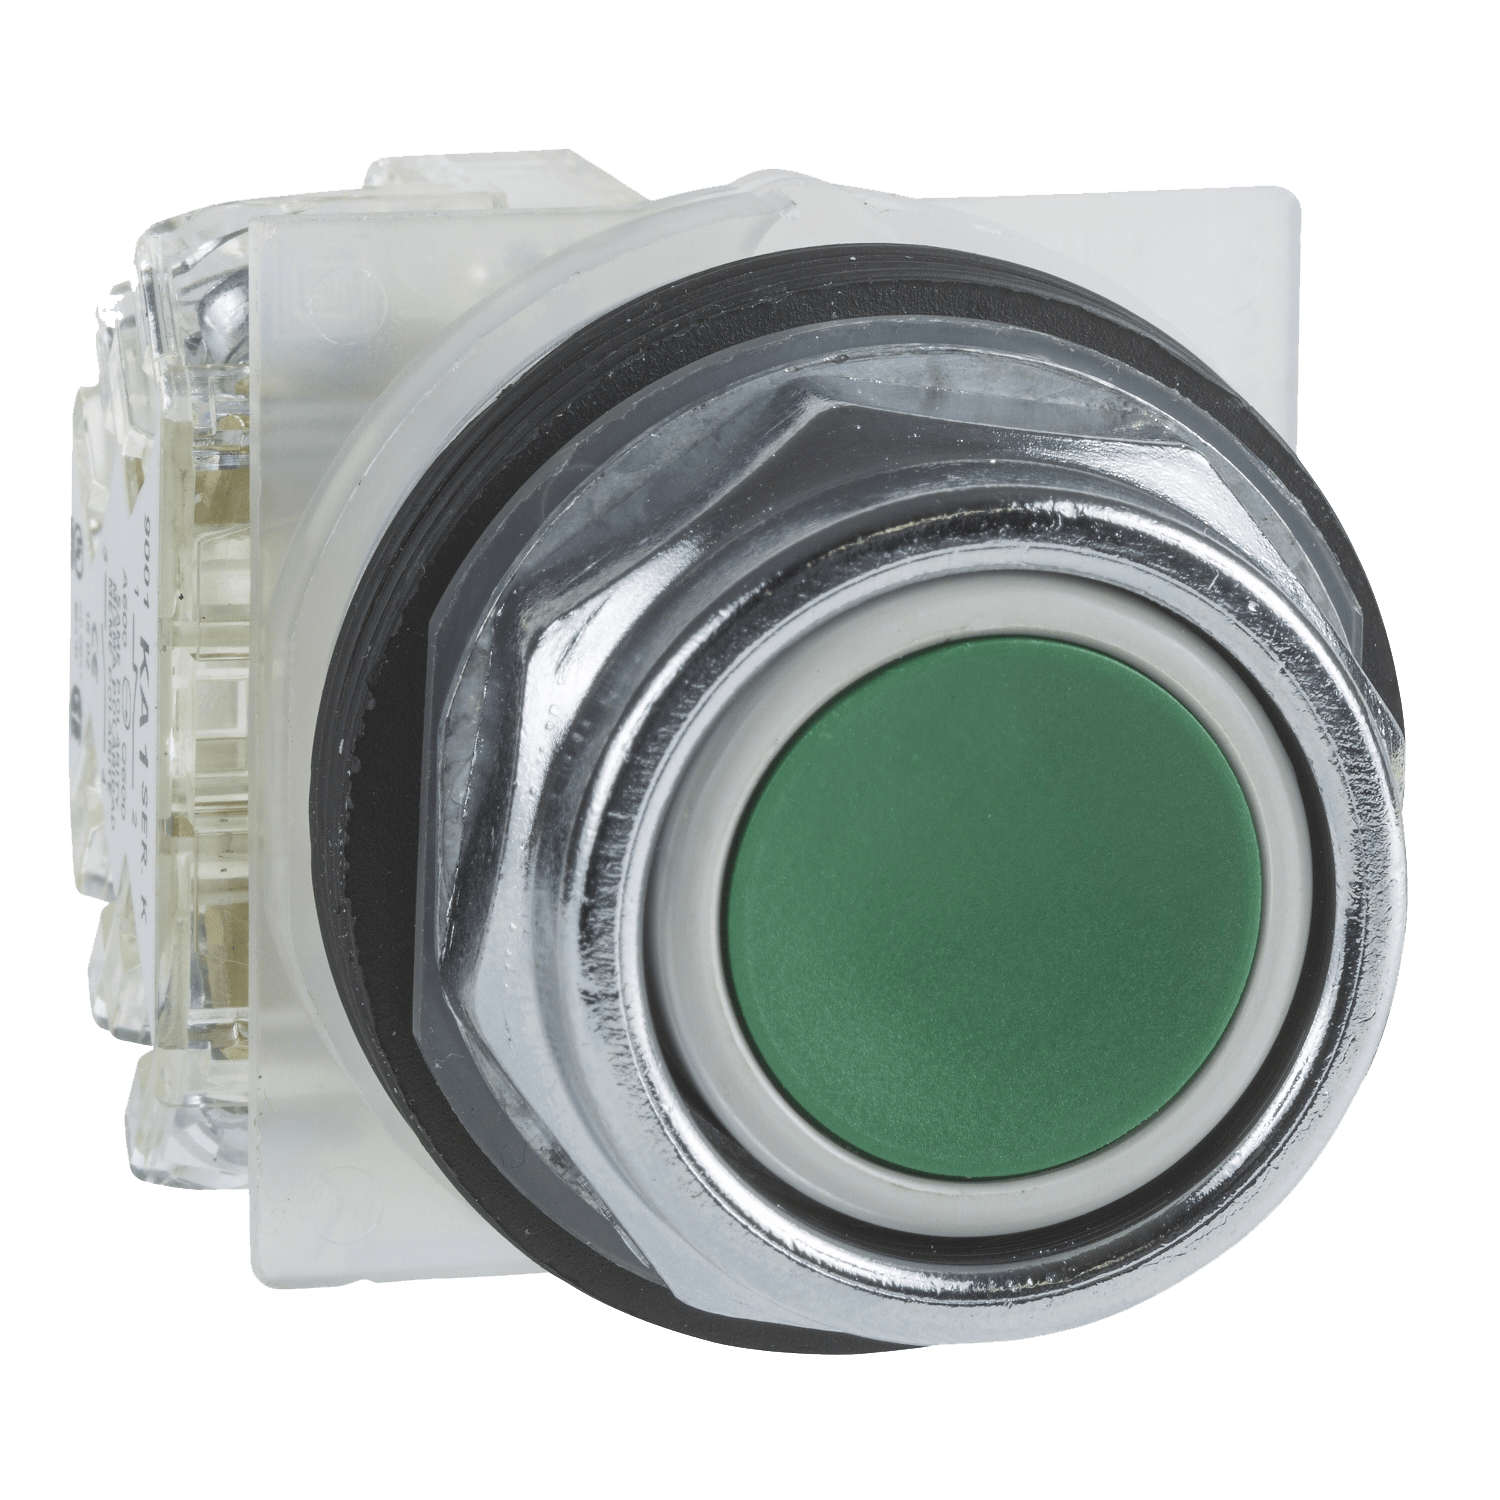 Harmony 30mm Pushbutton by Schneider Electric